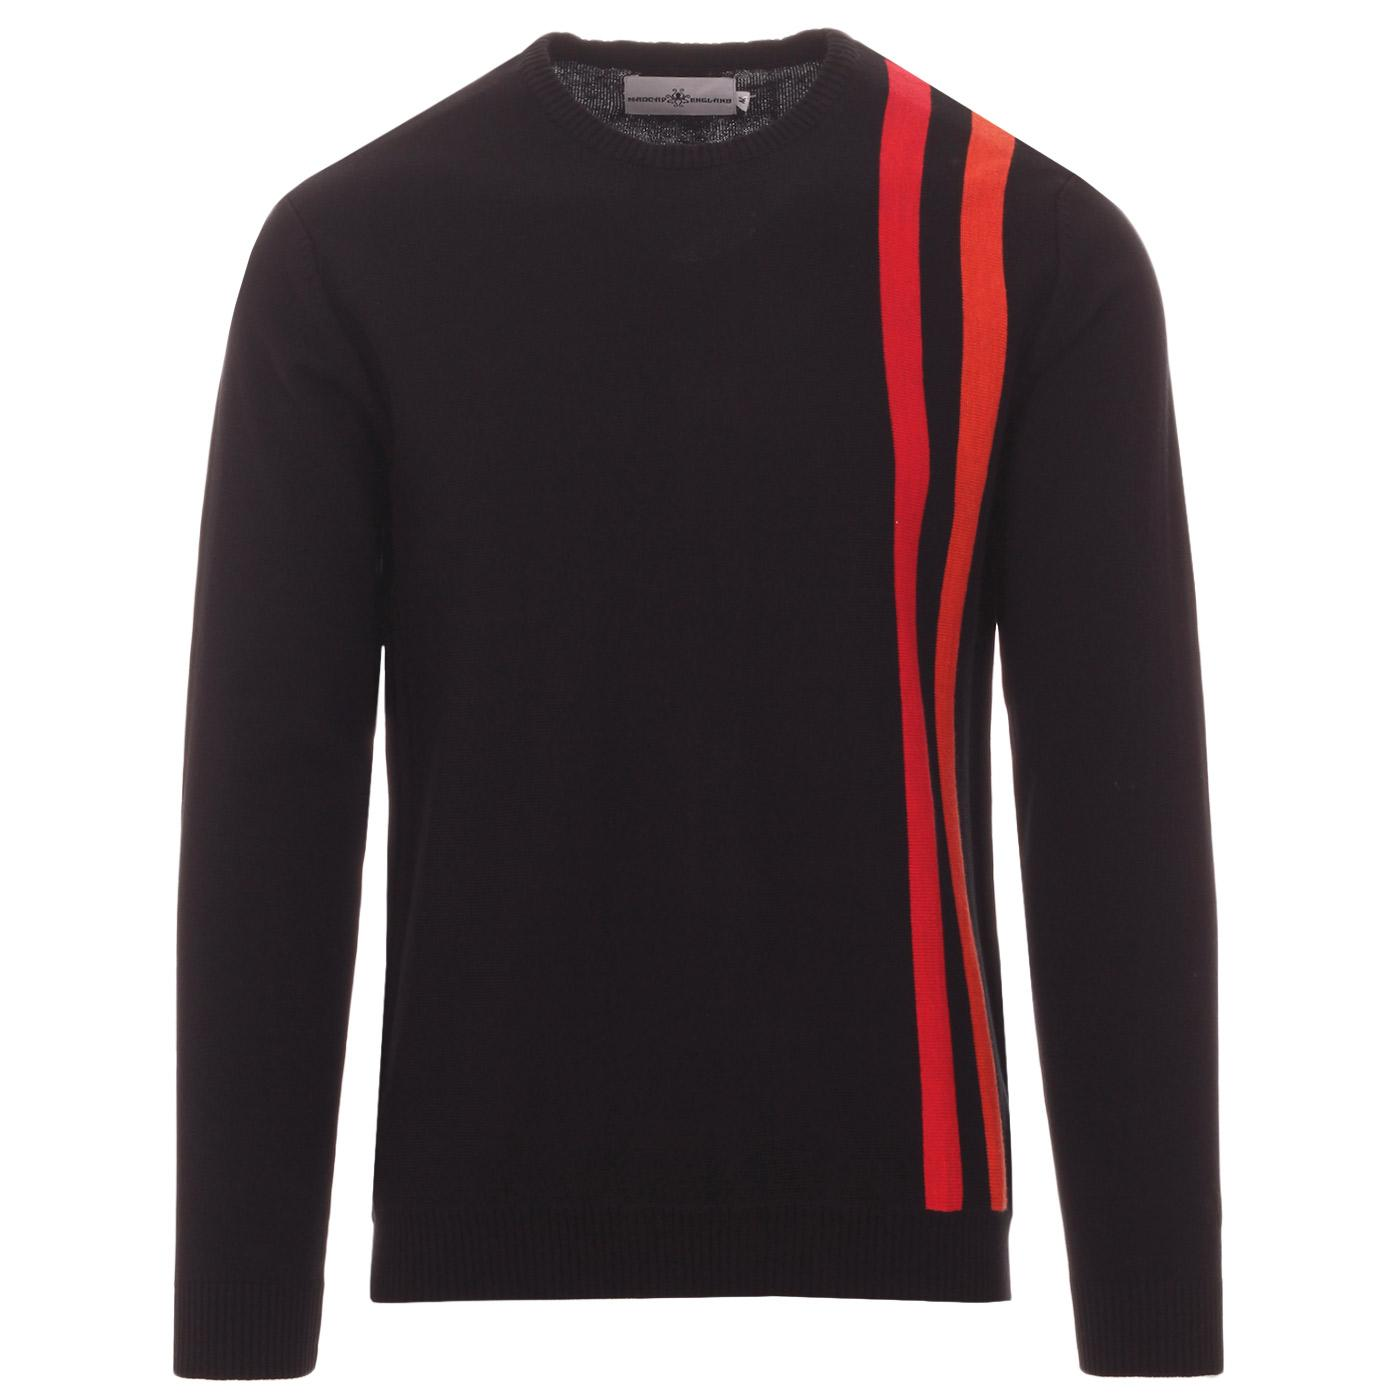 Madcap England Action 60s Mod Pop Art Racing Stripe Jumper in Black with Red and Orange stripes